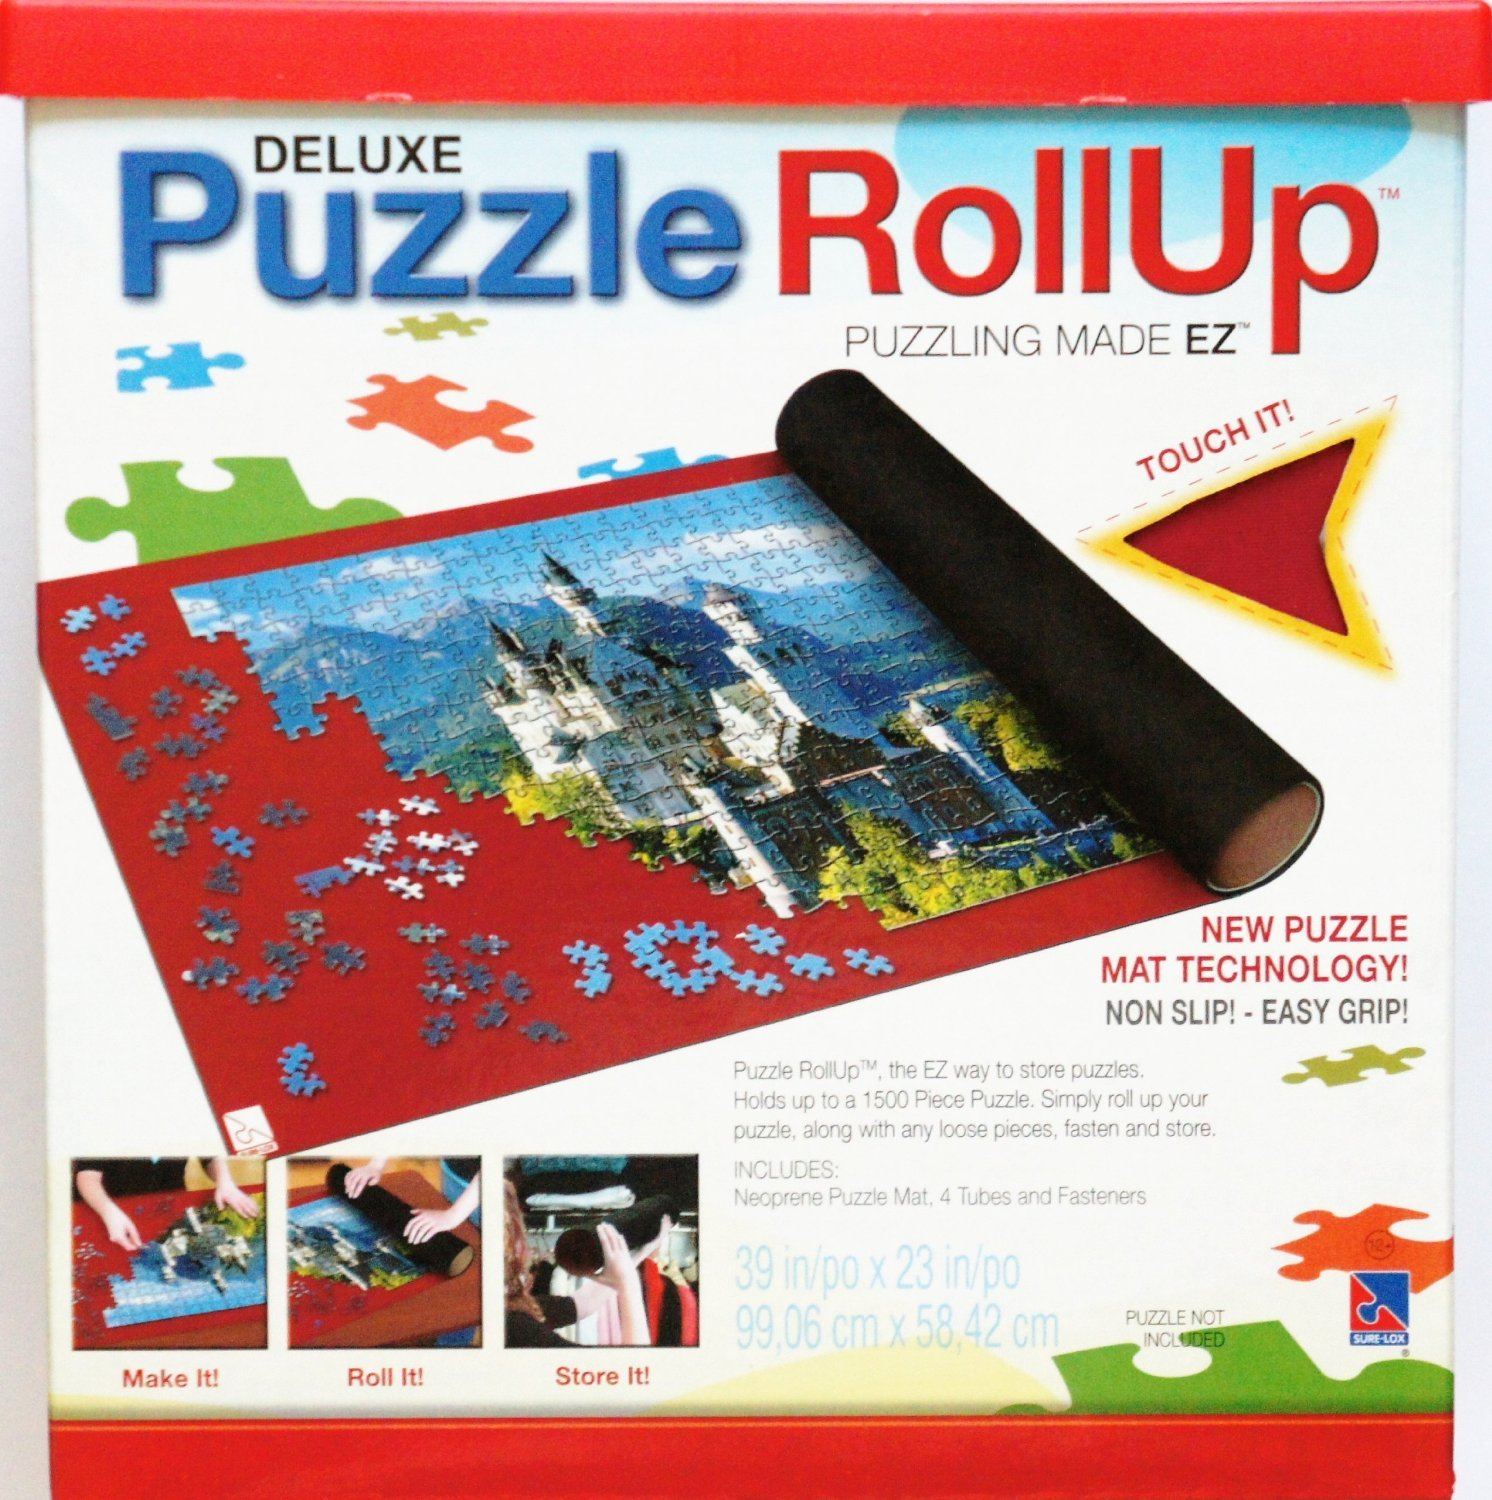 SURE LOX DELUXE PUZZLE RollUp Puzzling MADE EZ with new PUZZLE MAT TECHNOLOGY